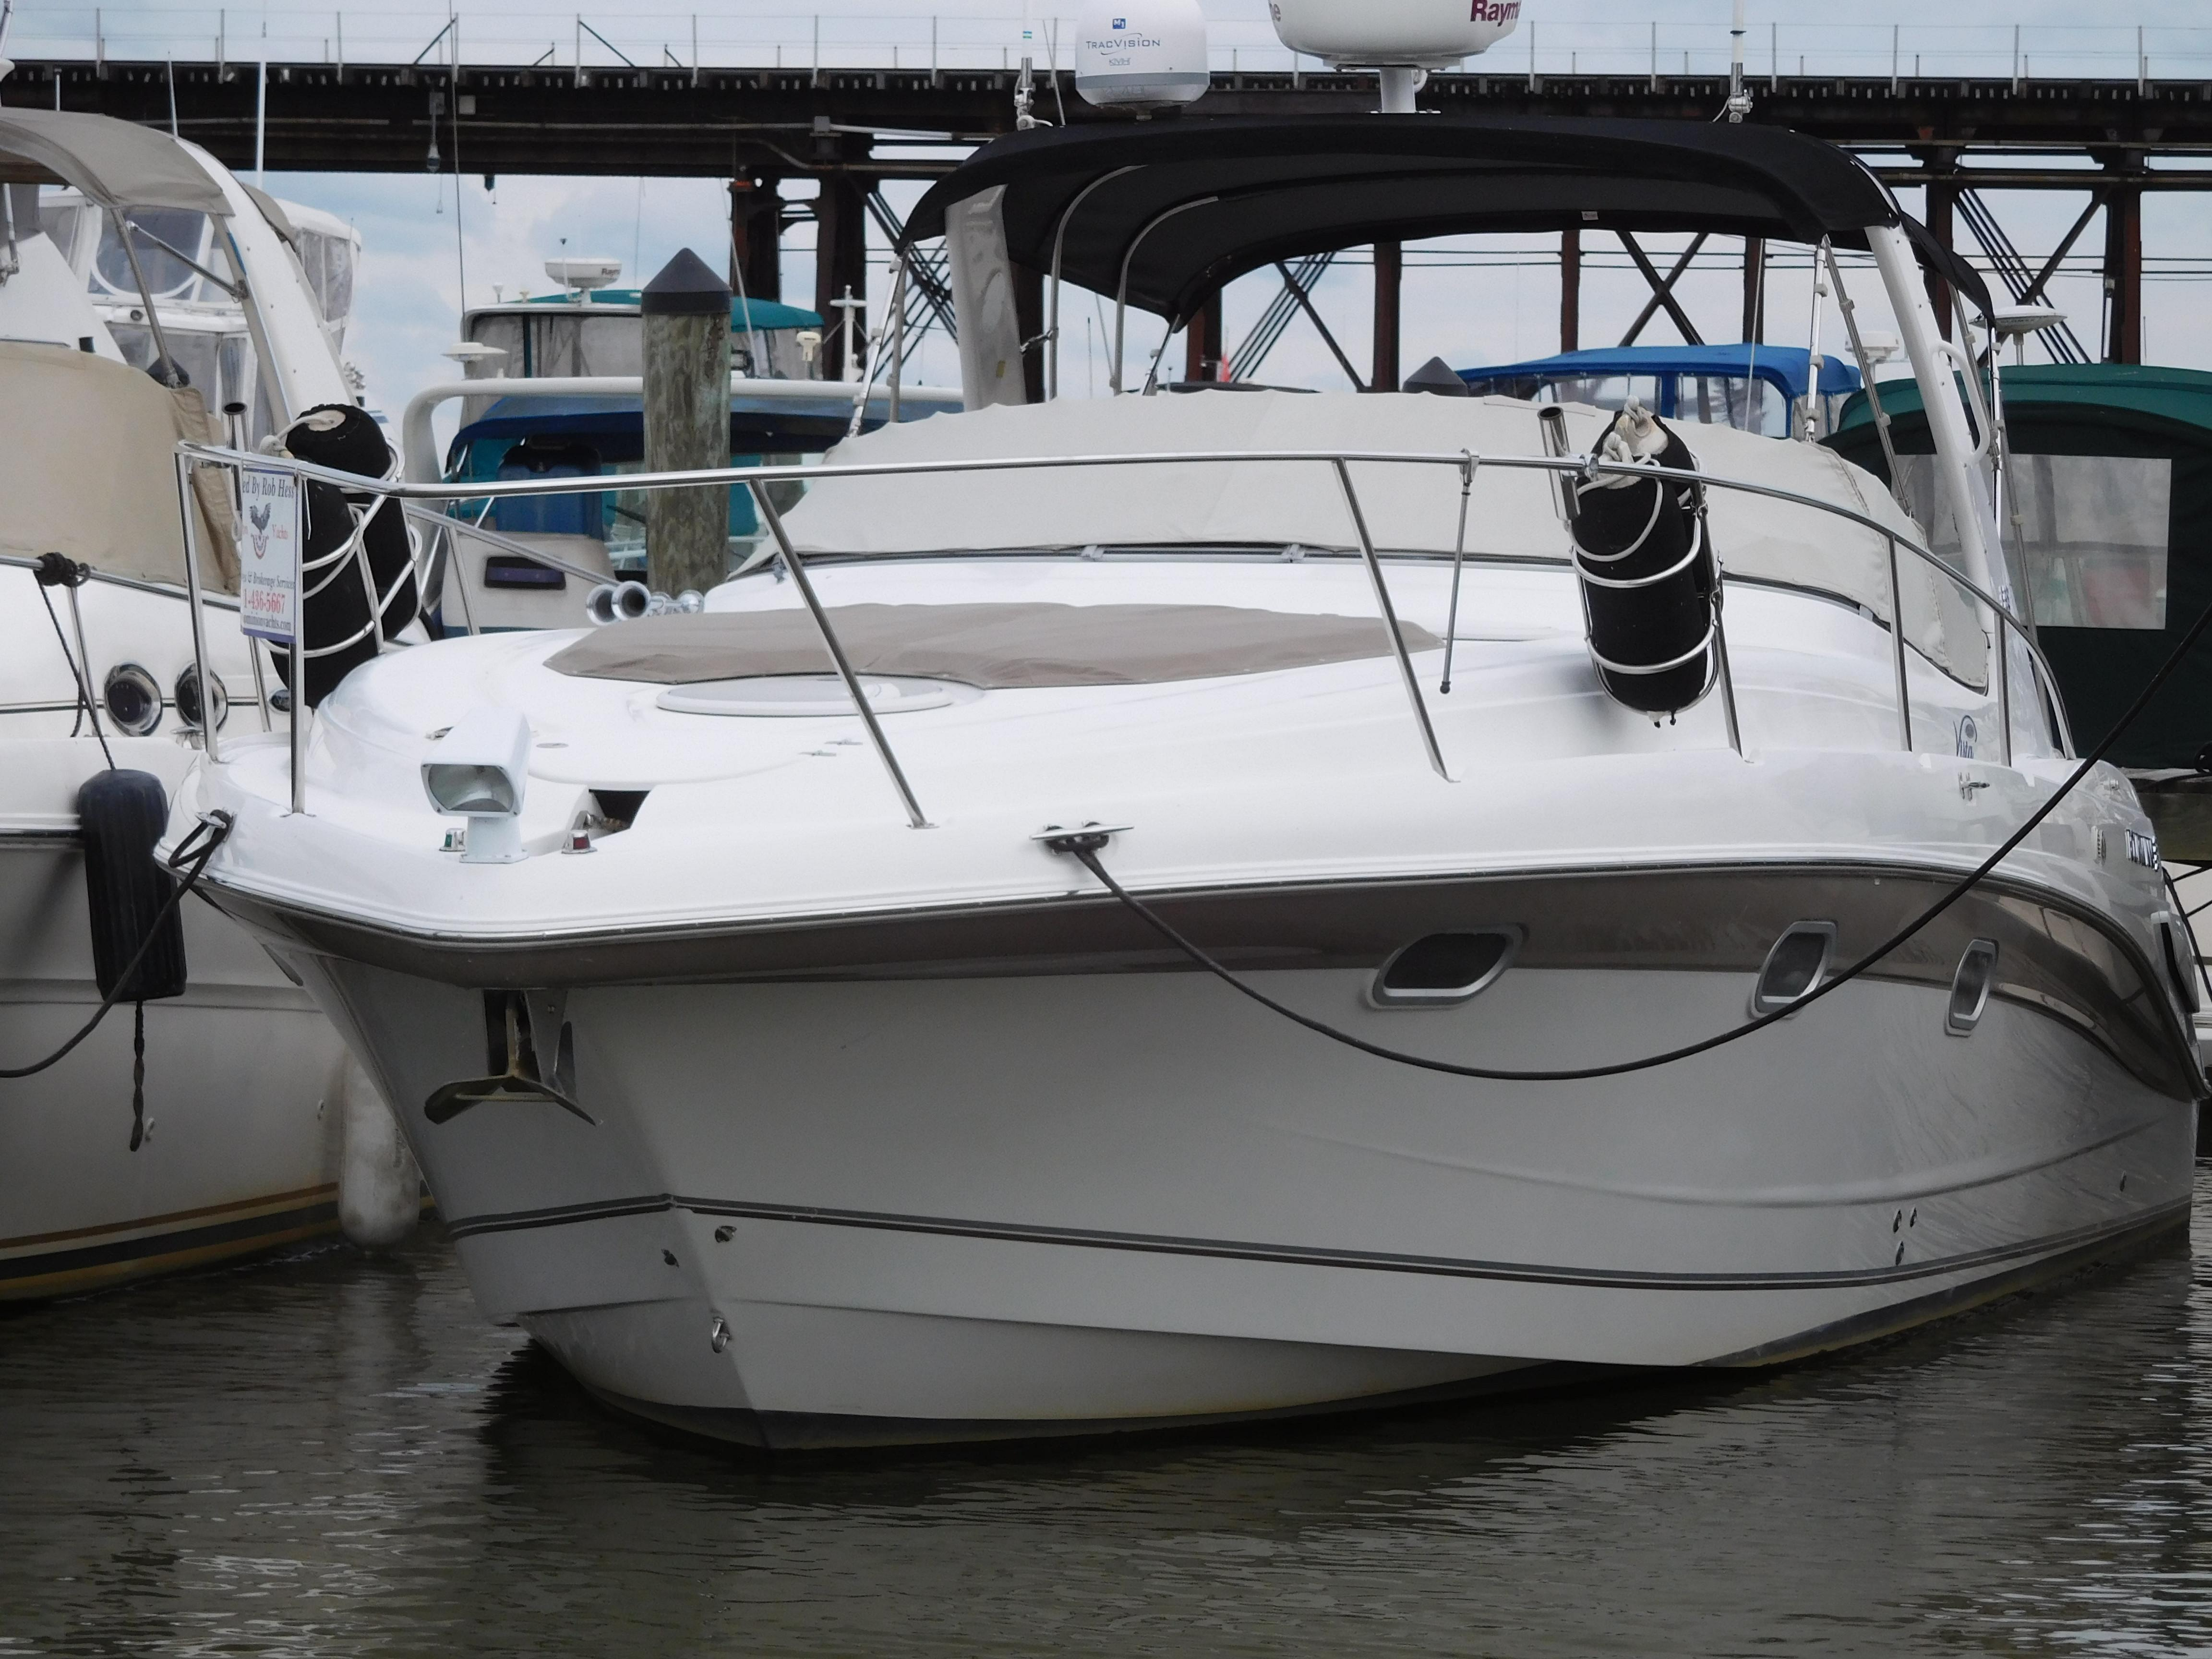 6504490_20171031092206767_1_XLARGE&w=520&h=346&t=1509470571000 search boats for sale yachtworld com  at gsmx.co